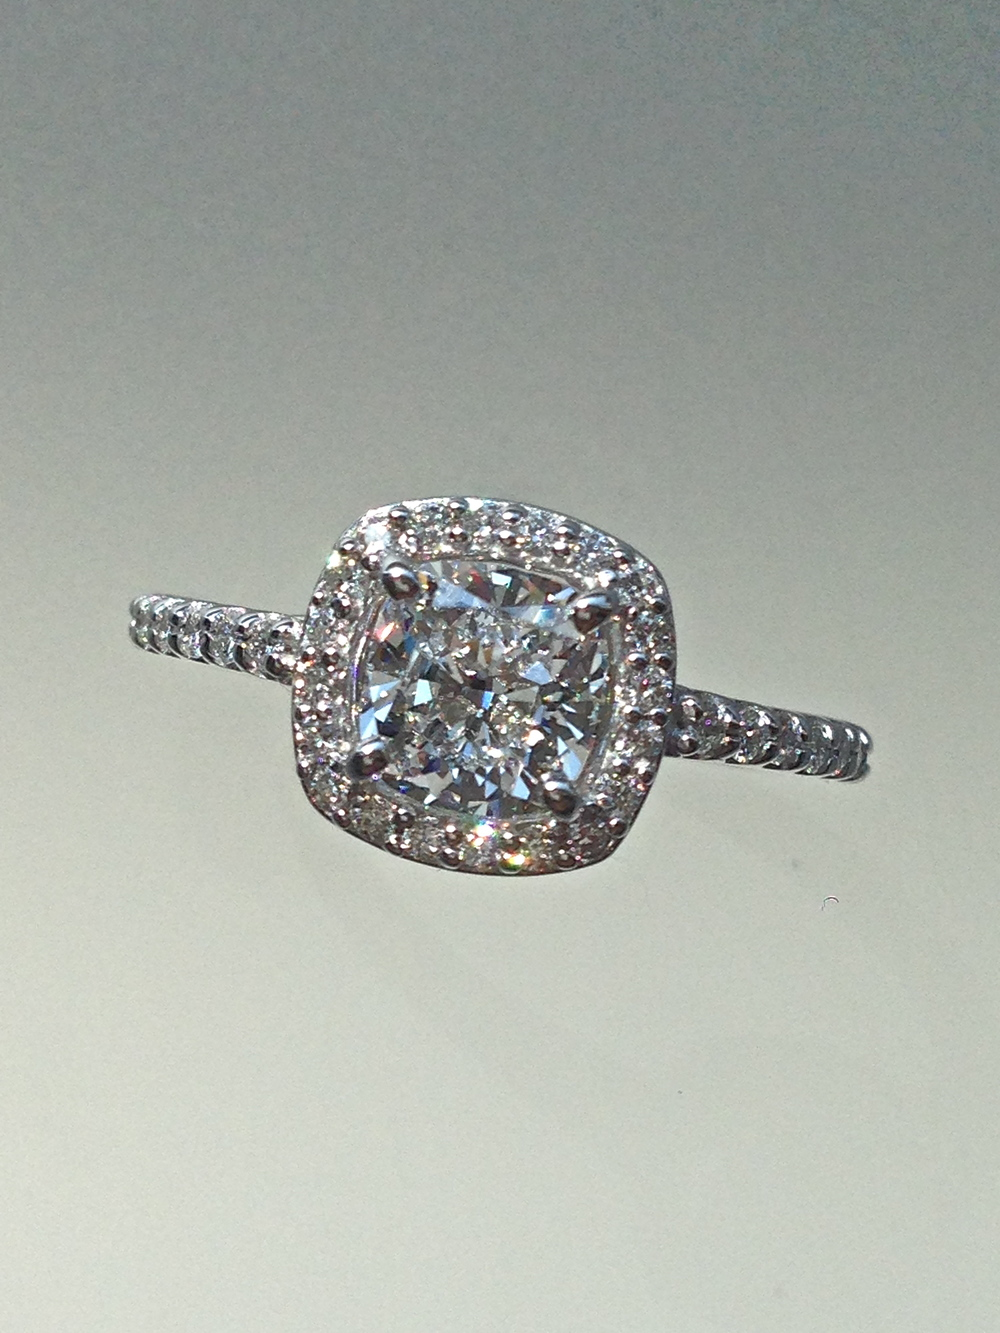 Craft-Revival Jewelers,  engagement ring, diamond engagement ring, diamond ring, modern ring, unique ring, unique engagement ring, halo engagement ring, cushion cut diamond, petite ring